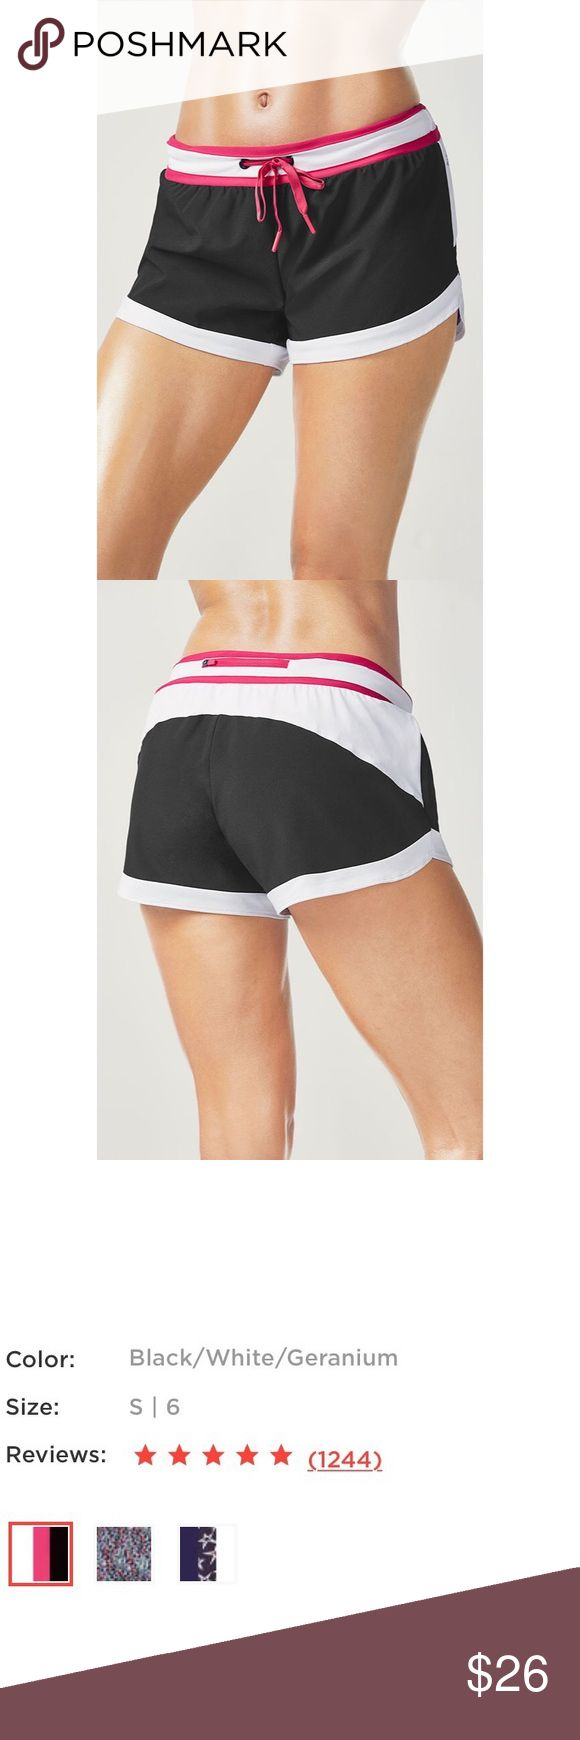 NWT Fabletics Riho Short NWT! I just prefer my gym shorts to be a bit looser. Reasonable offers welcome.  🖤No trades or PayPal🖤 Fabletics Shorts